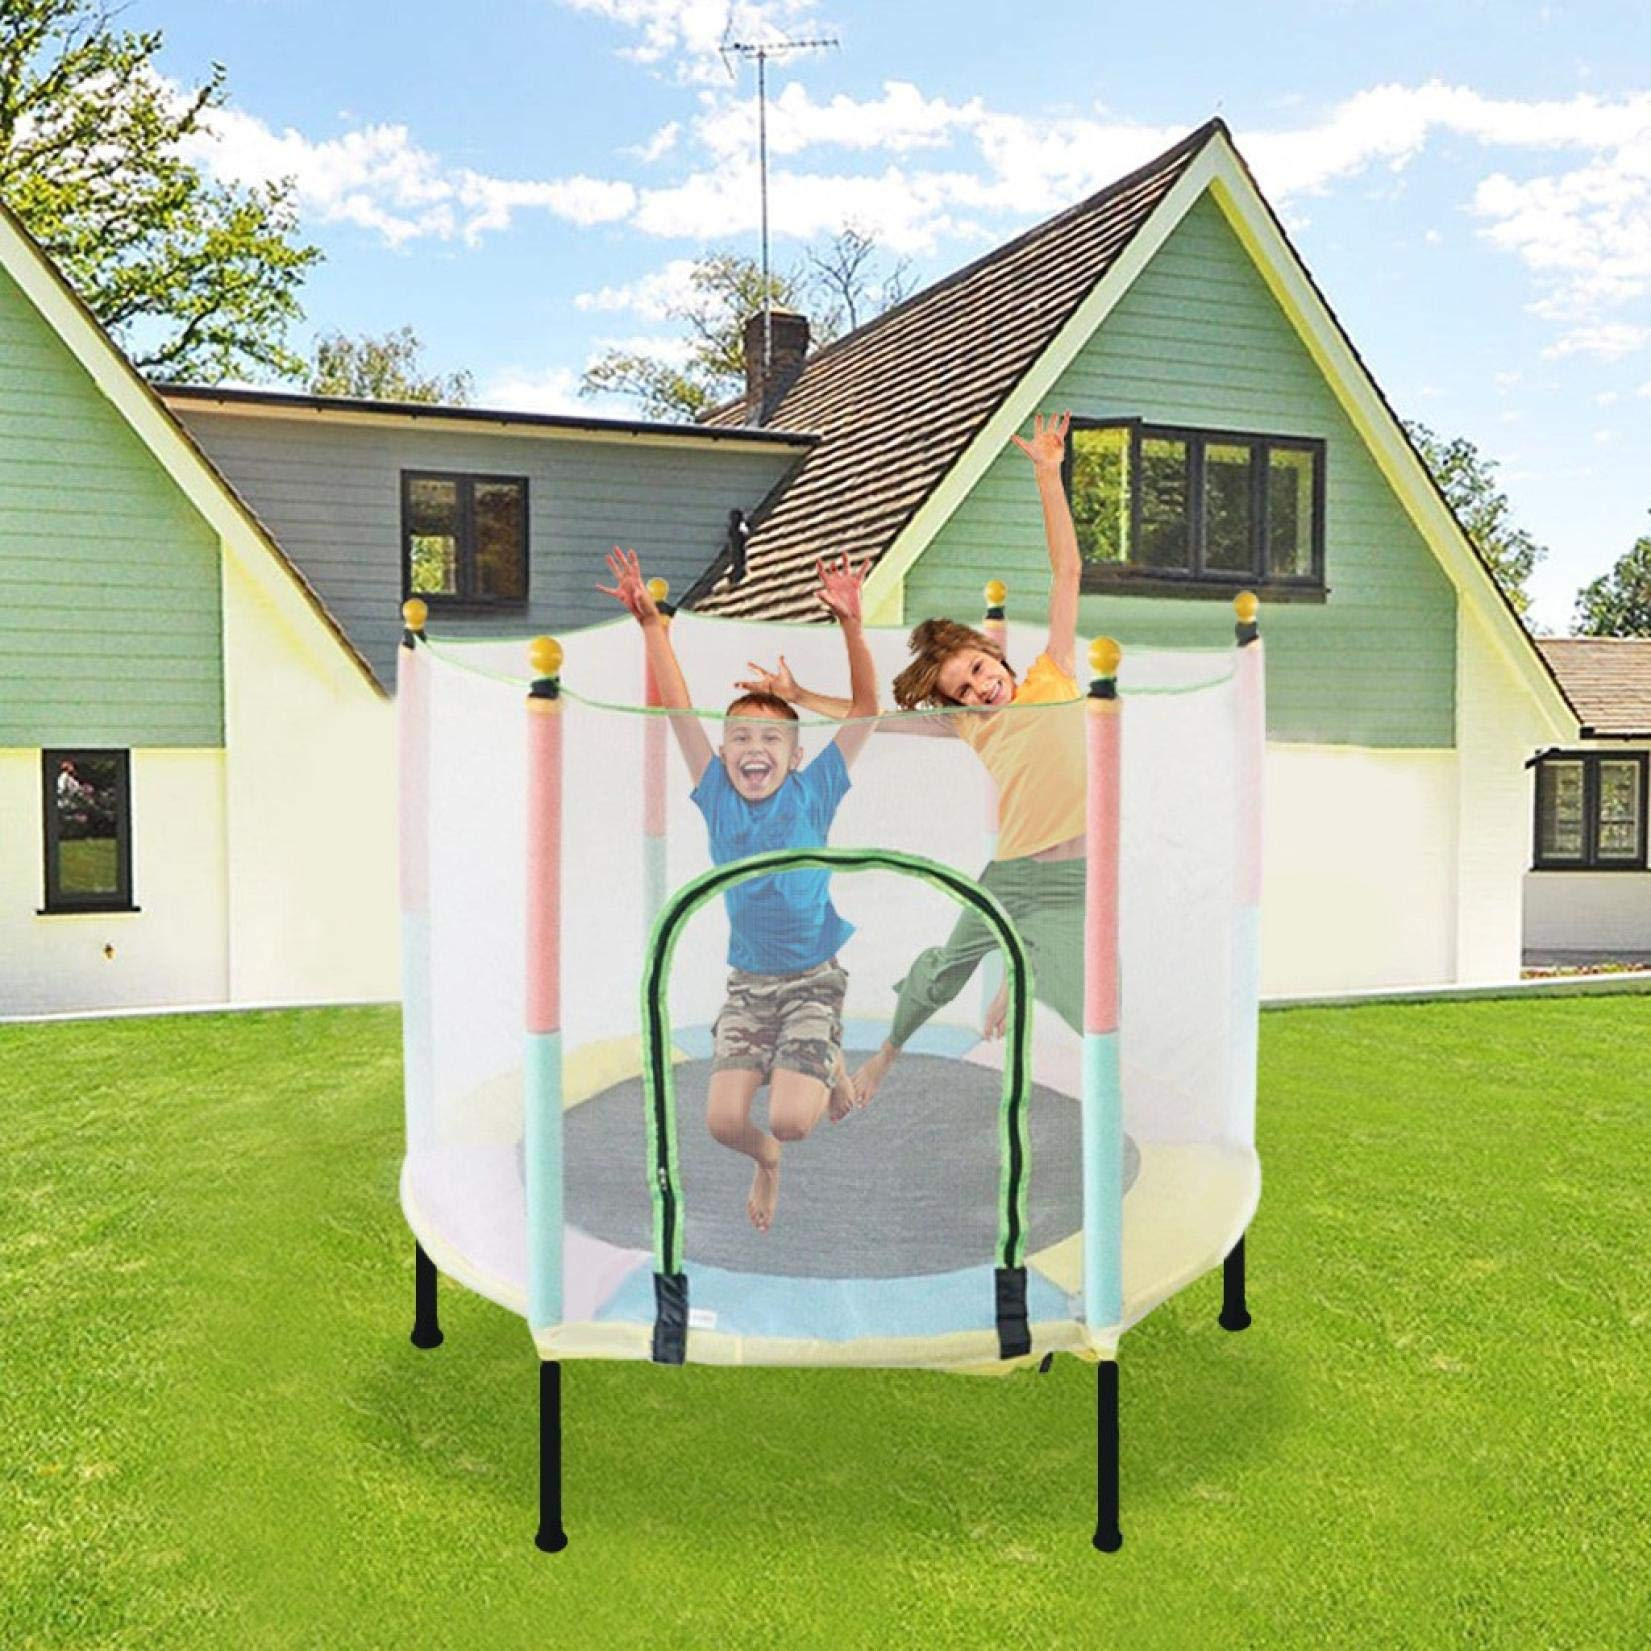 Marguller Trampoline for Kids | 5FT Kids Trampoline with Enclosure Net Jumping Mat and Spring Cover Padding | Complete Accessory Set and Easy Assembly | Max Load 220lbs